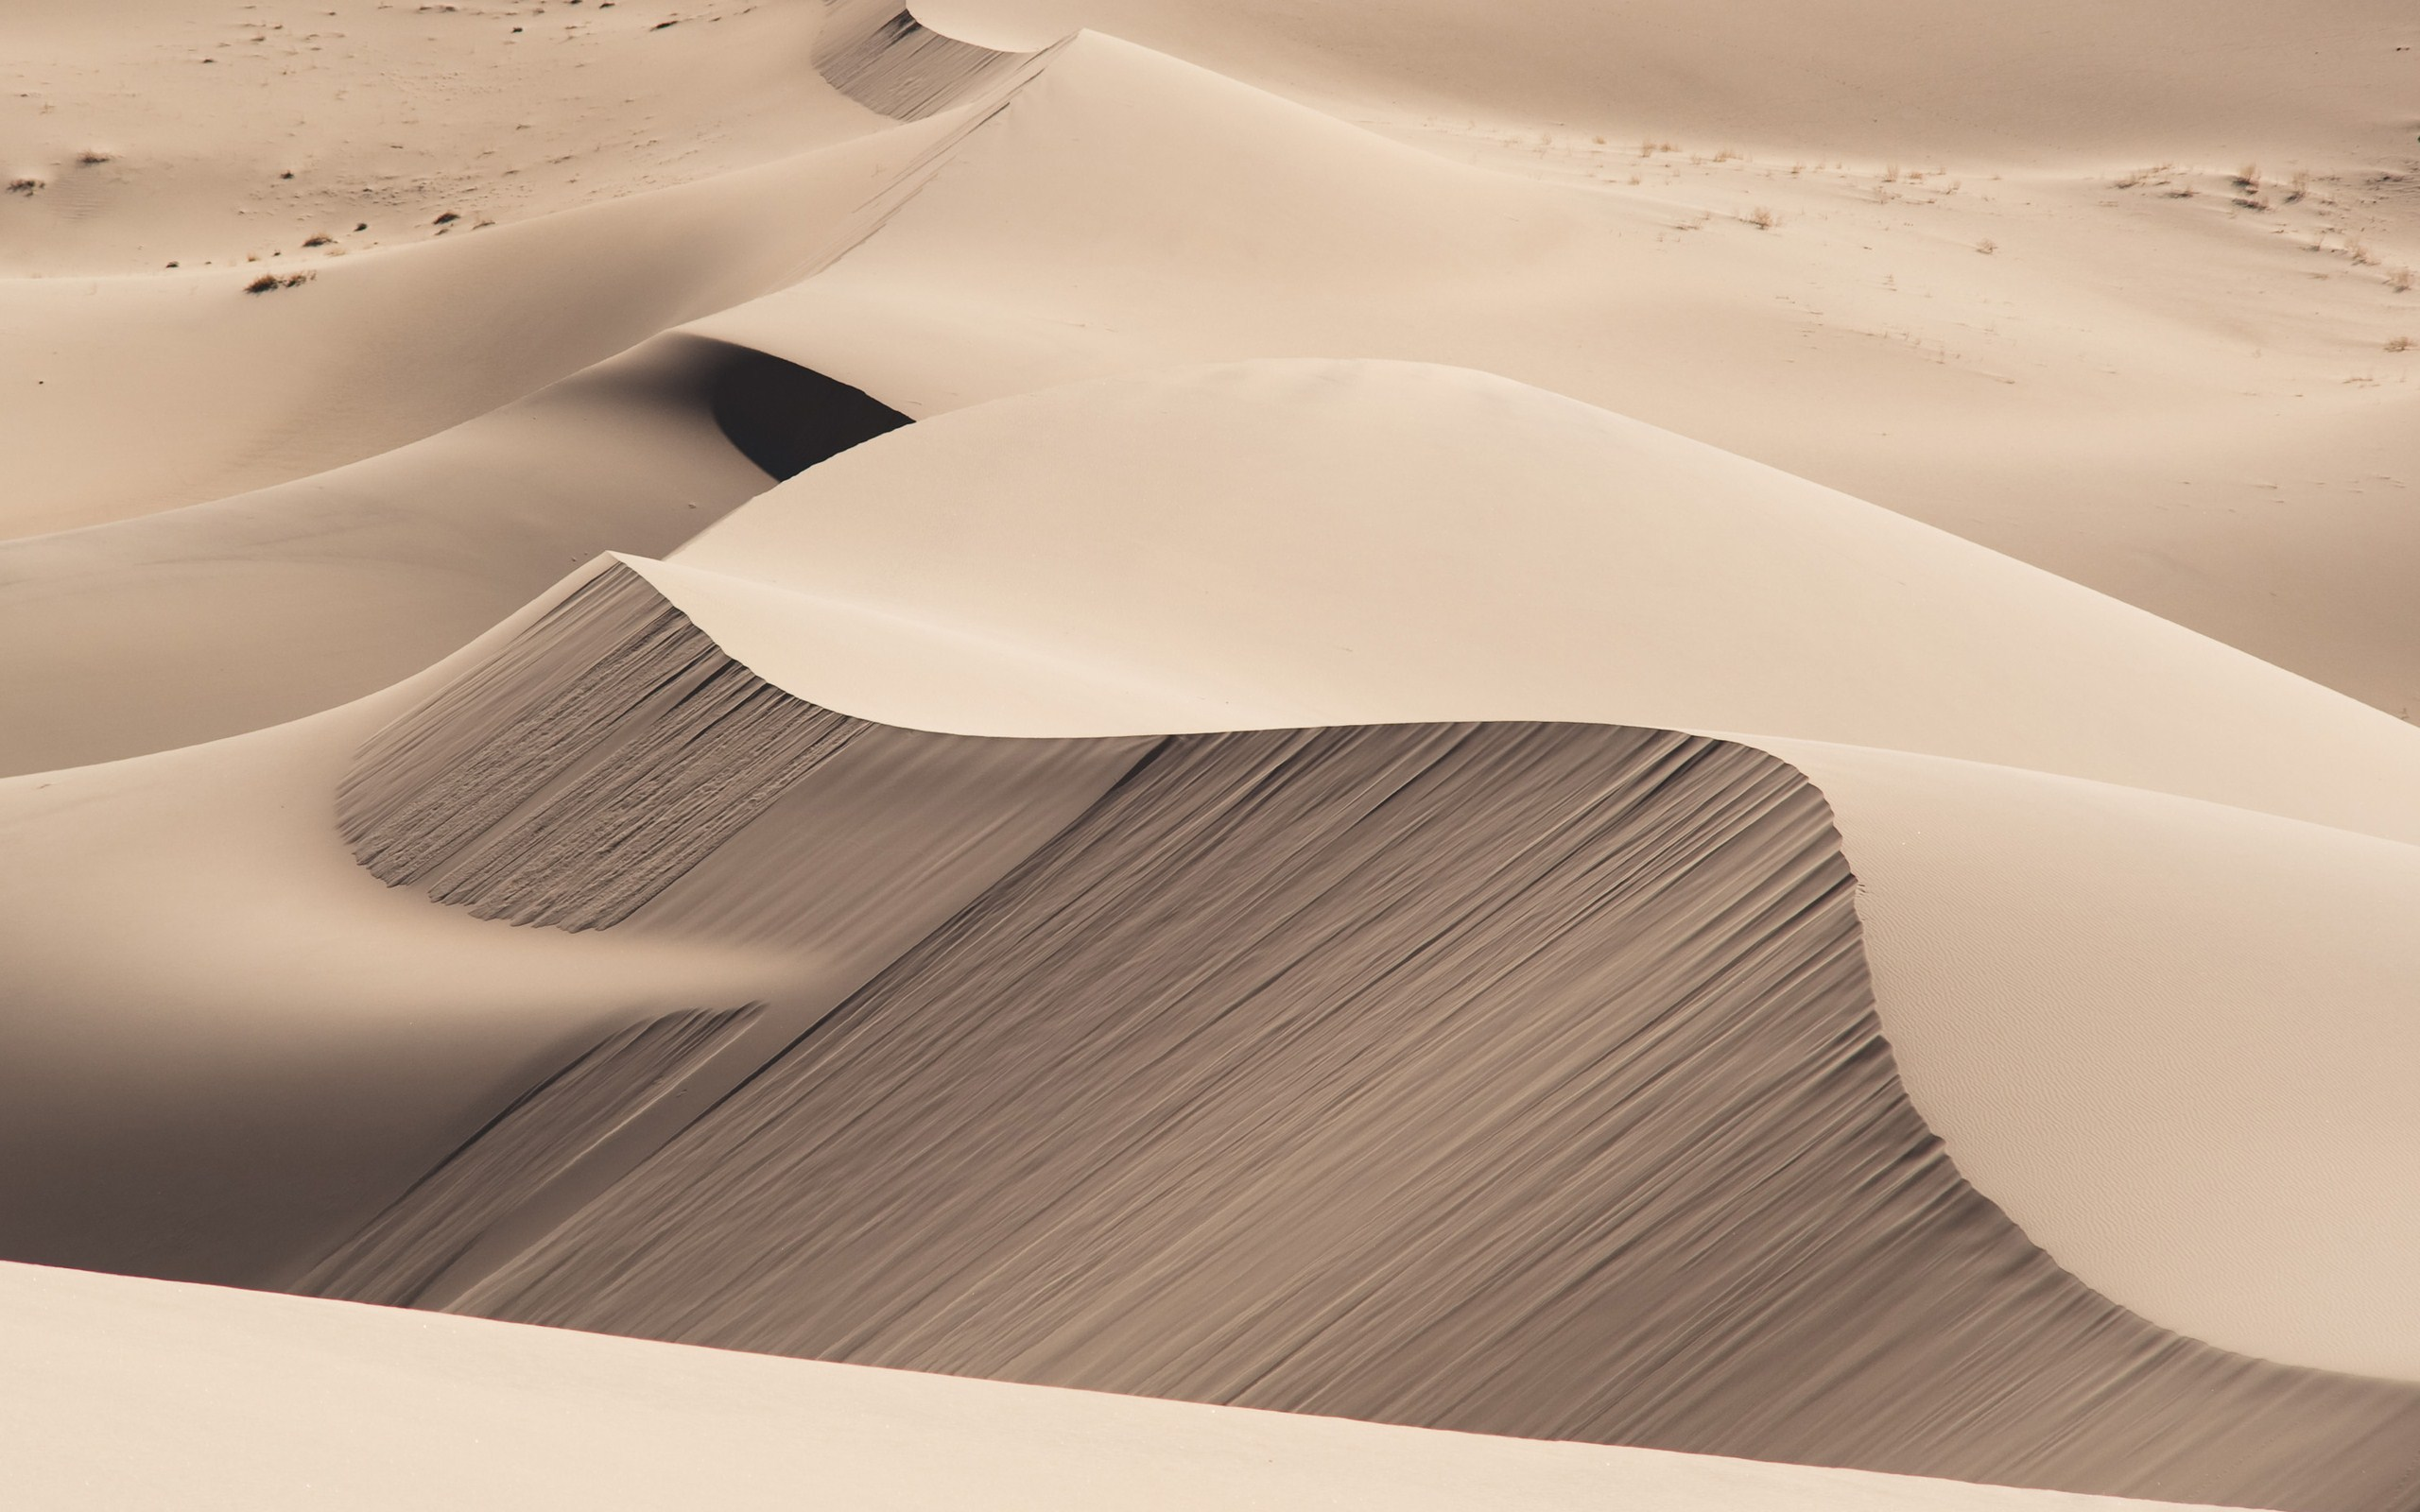 dunes wallpaper hd